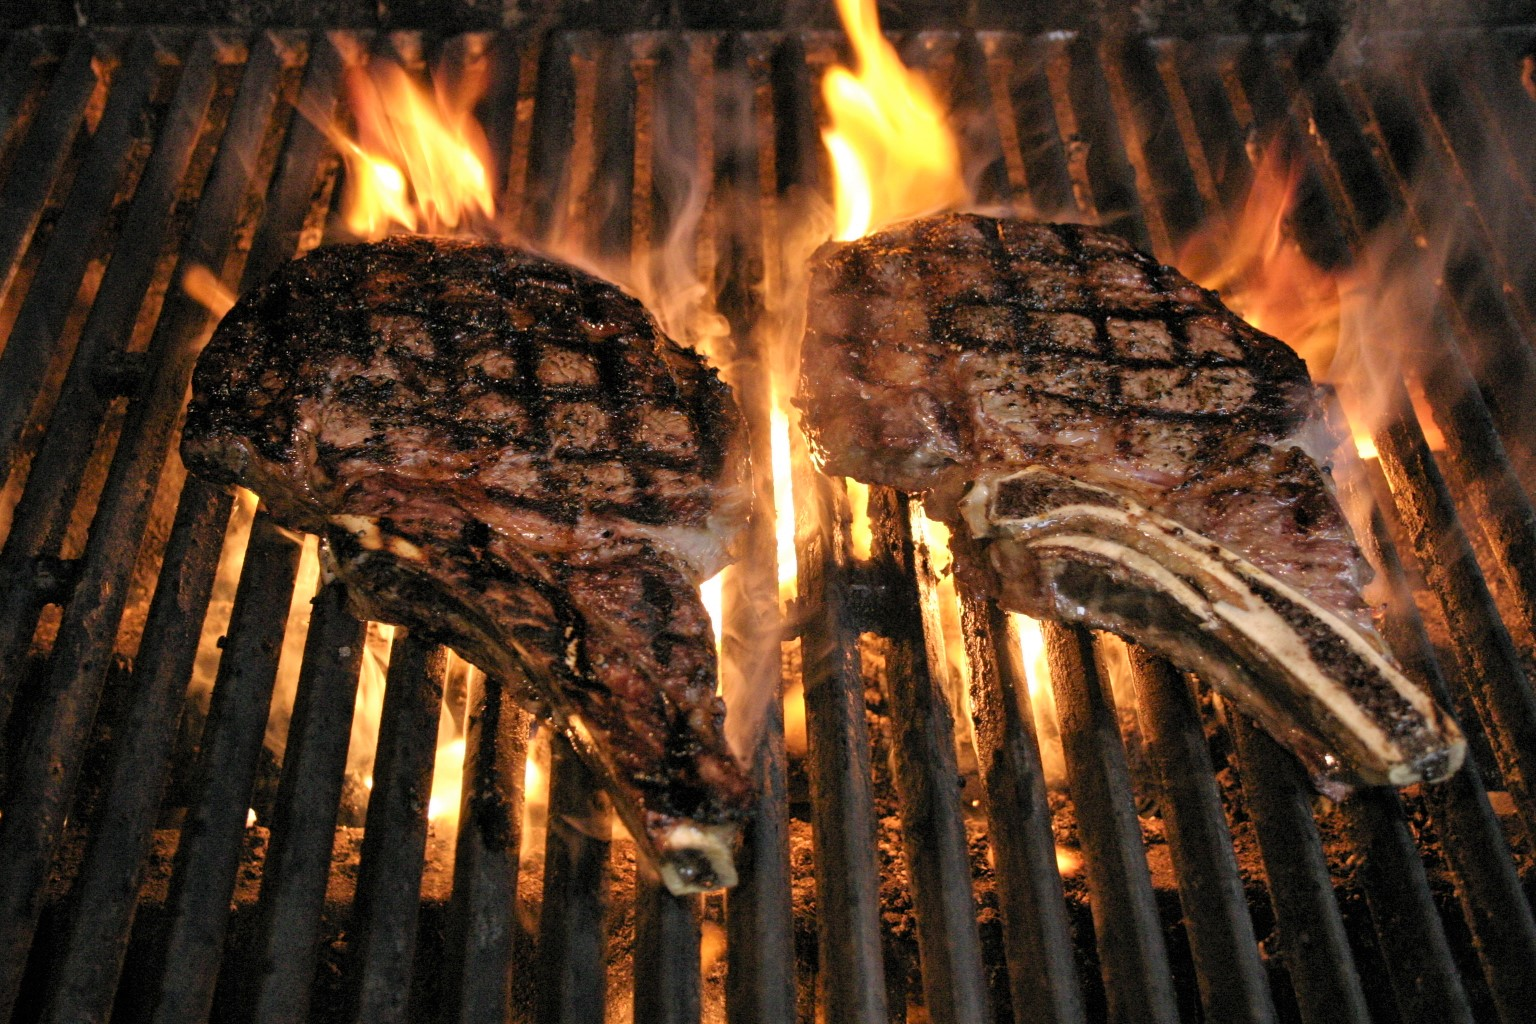 grilling really good steaks